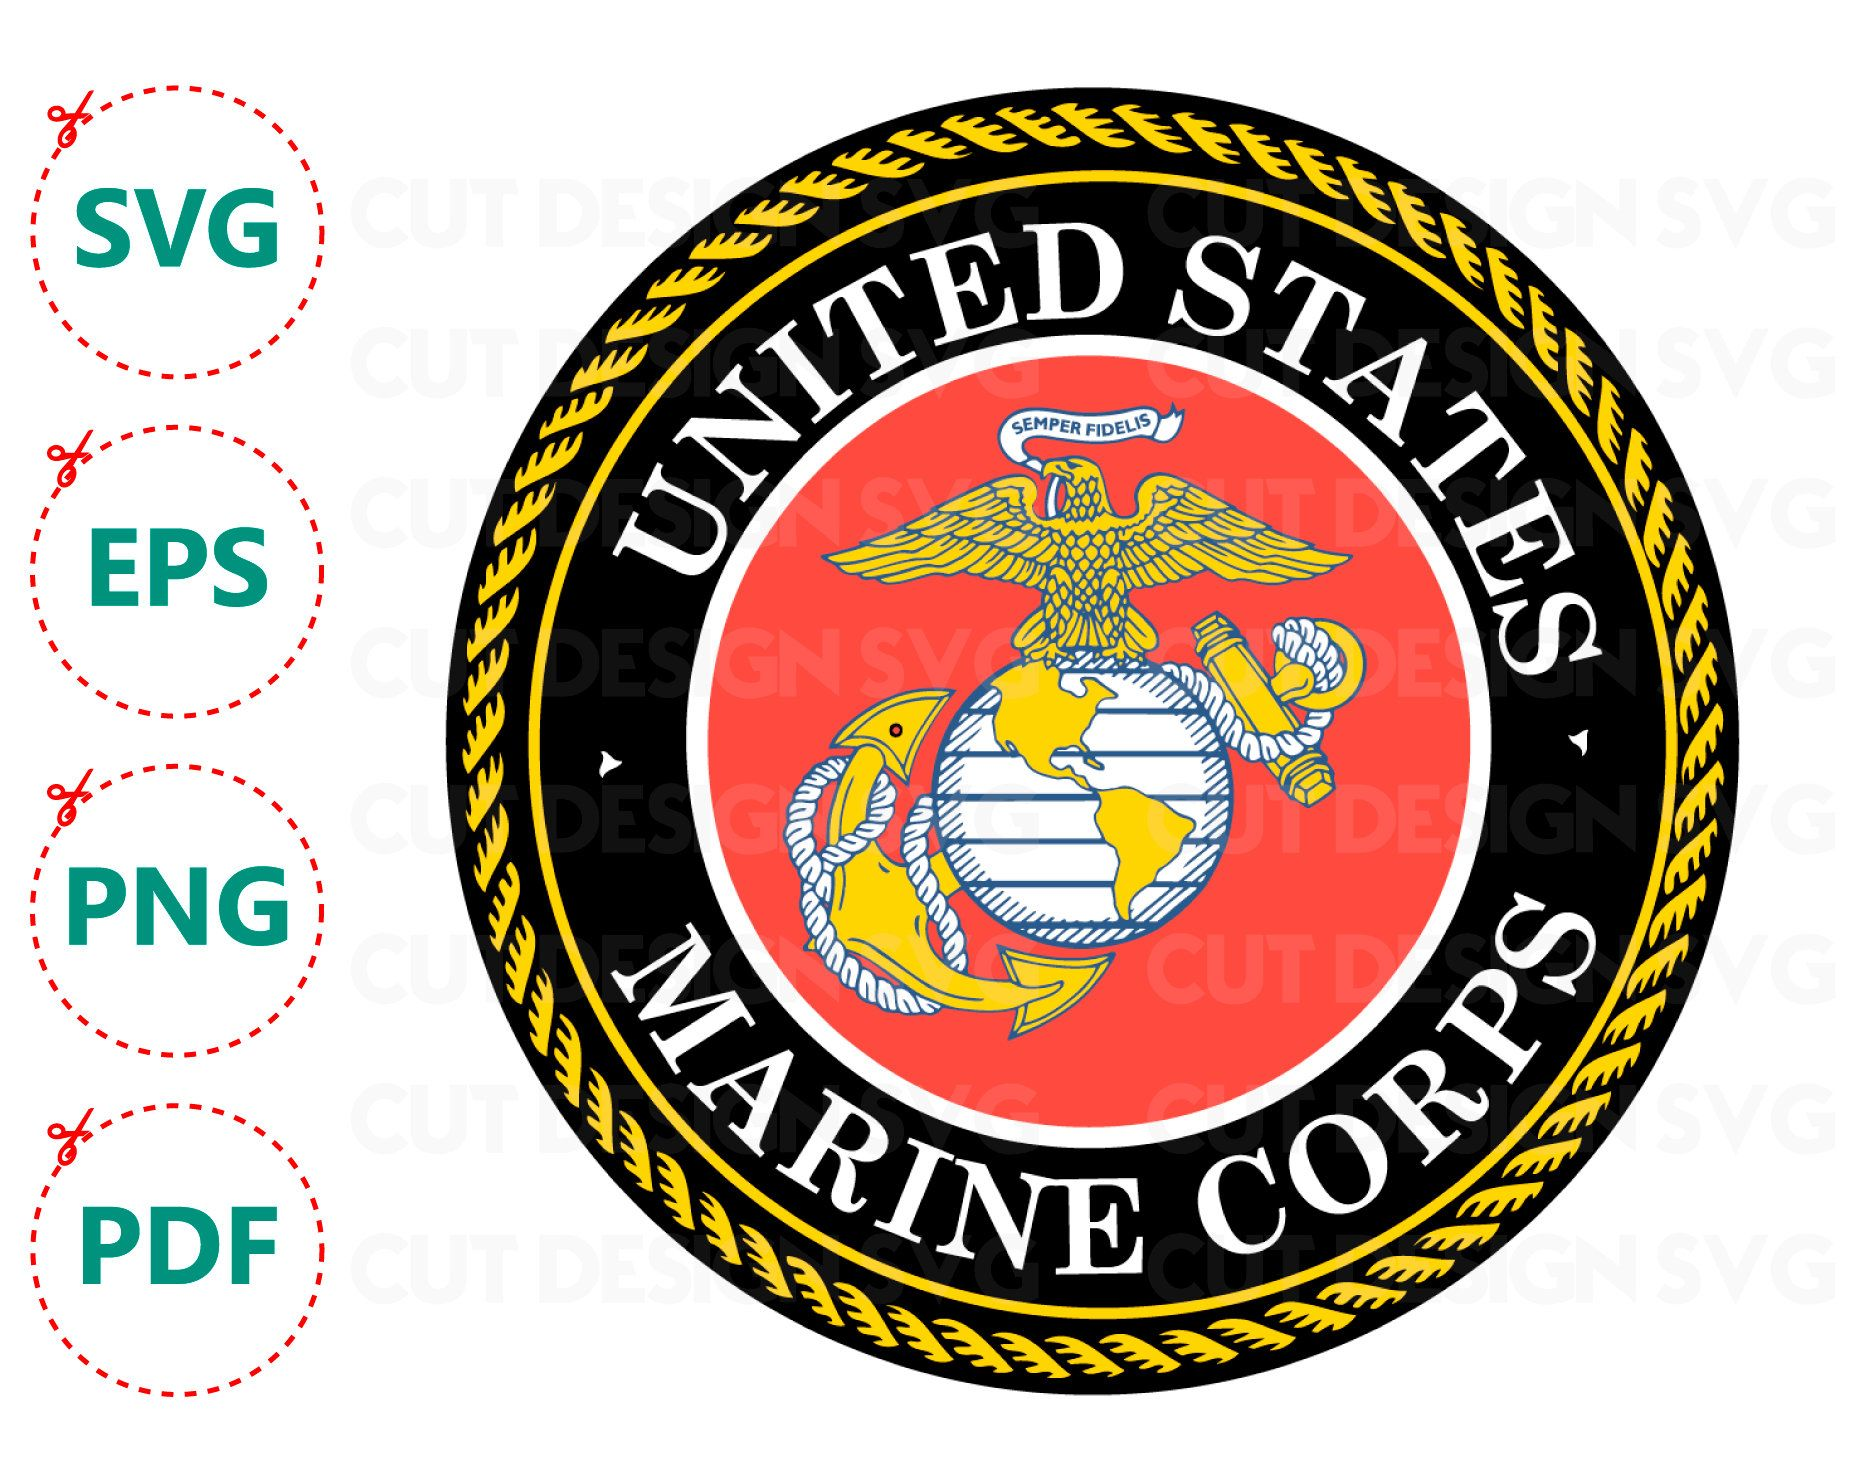 marine corps logo svg vector and clip art inspiration u2022 rh clipartsource today marine corps emblem vector marine corps emblem vector